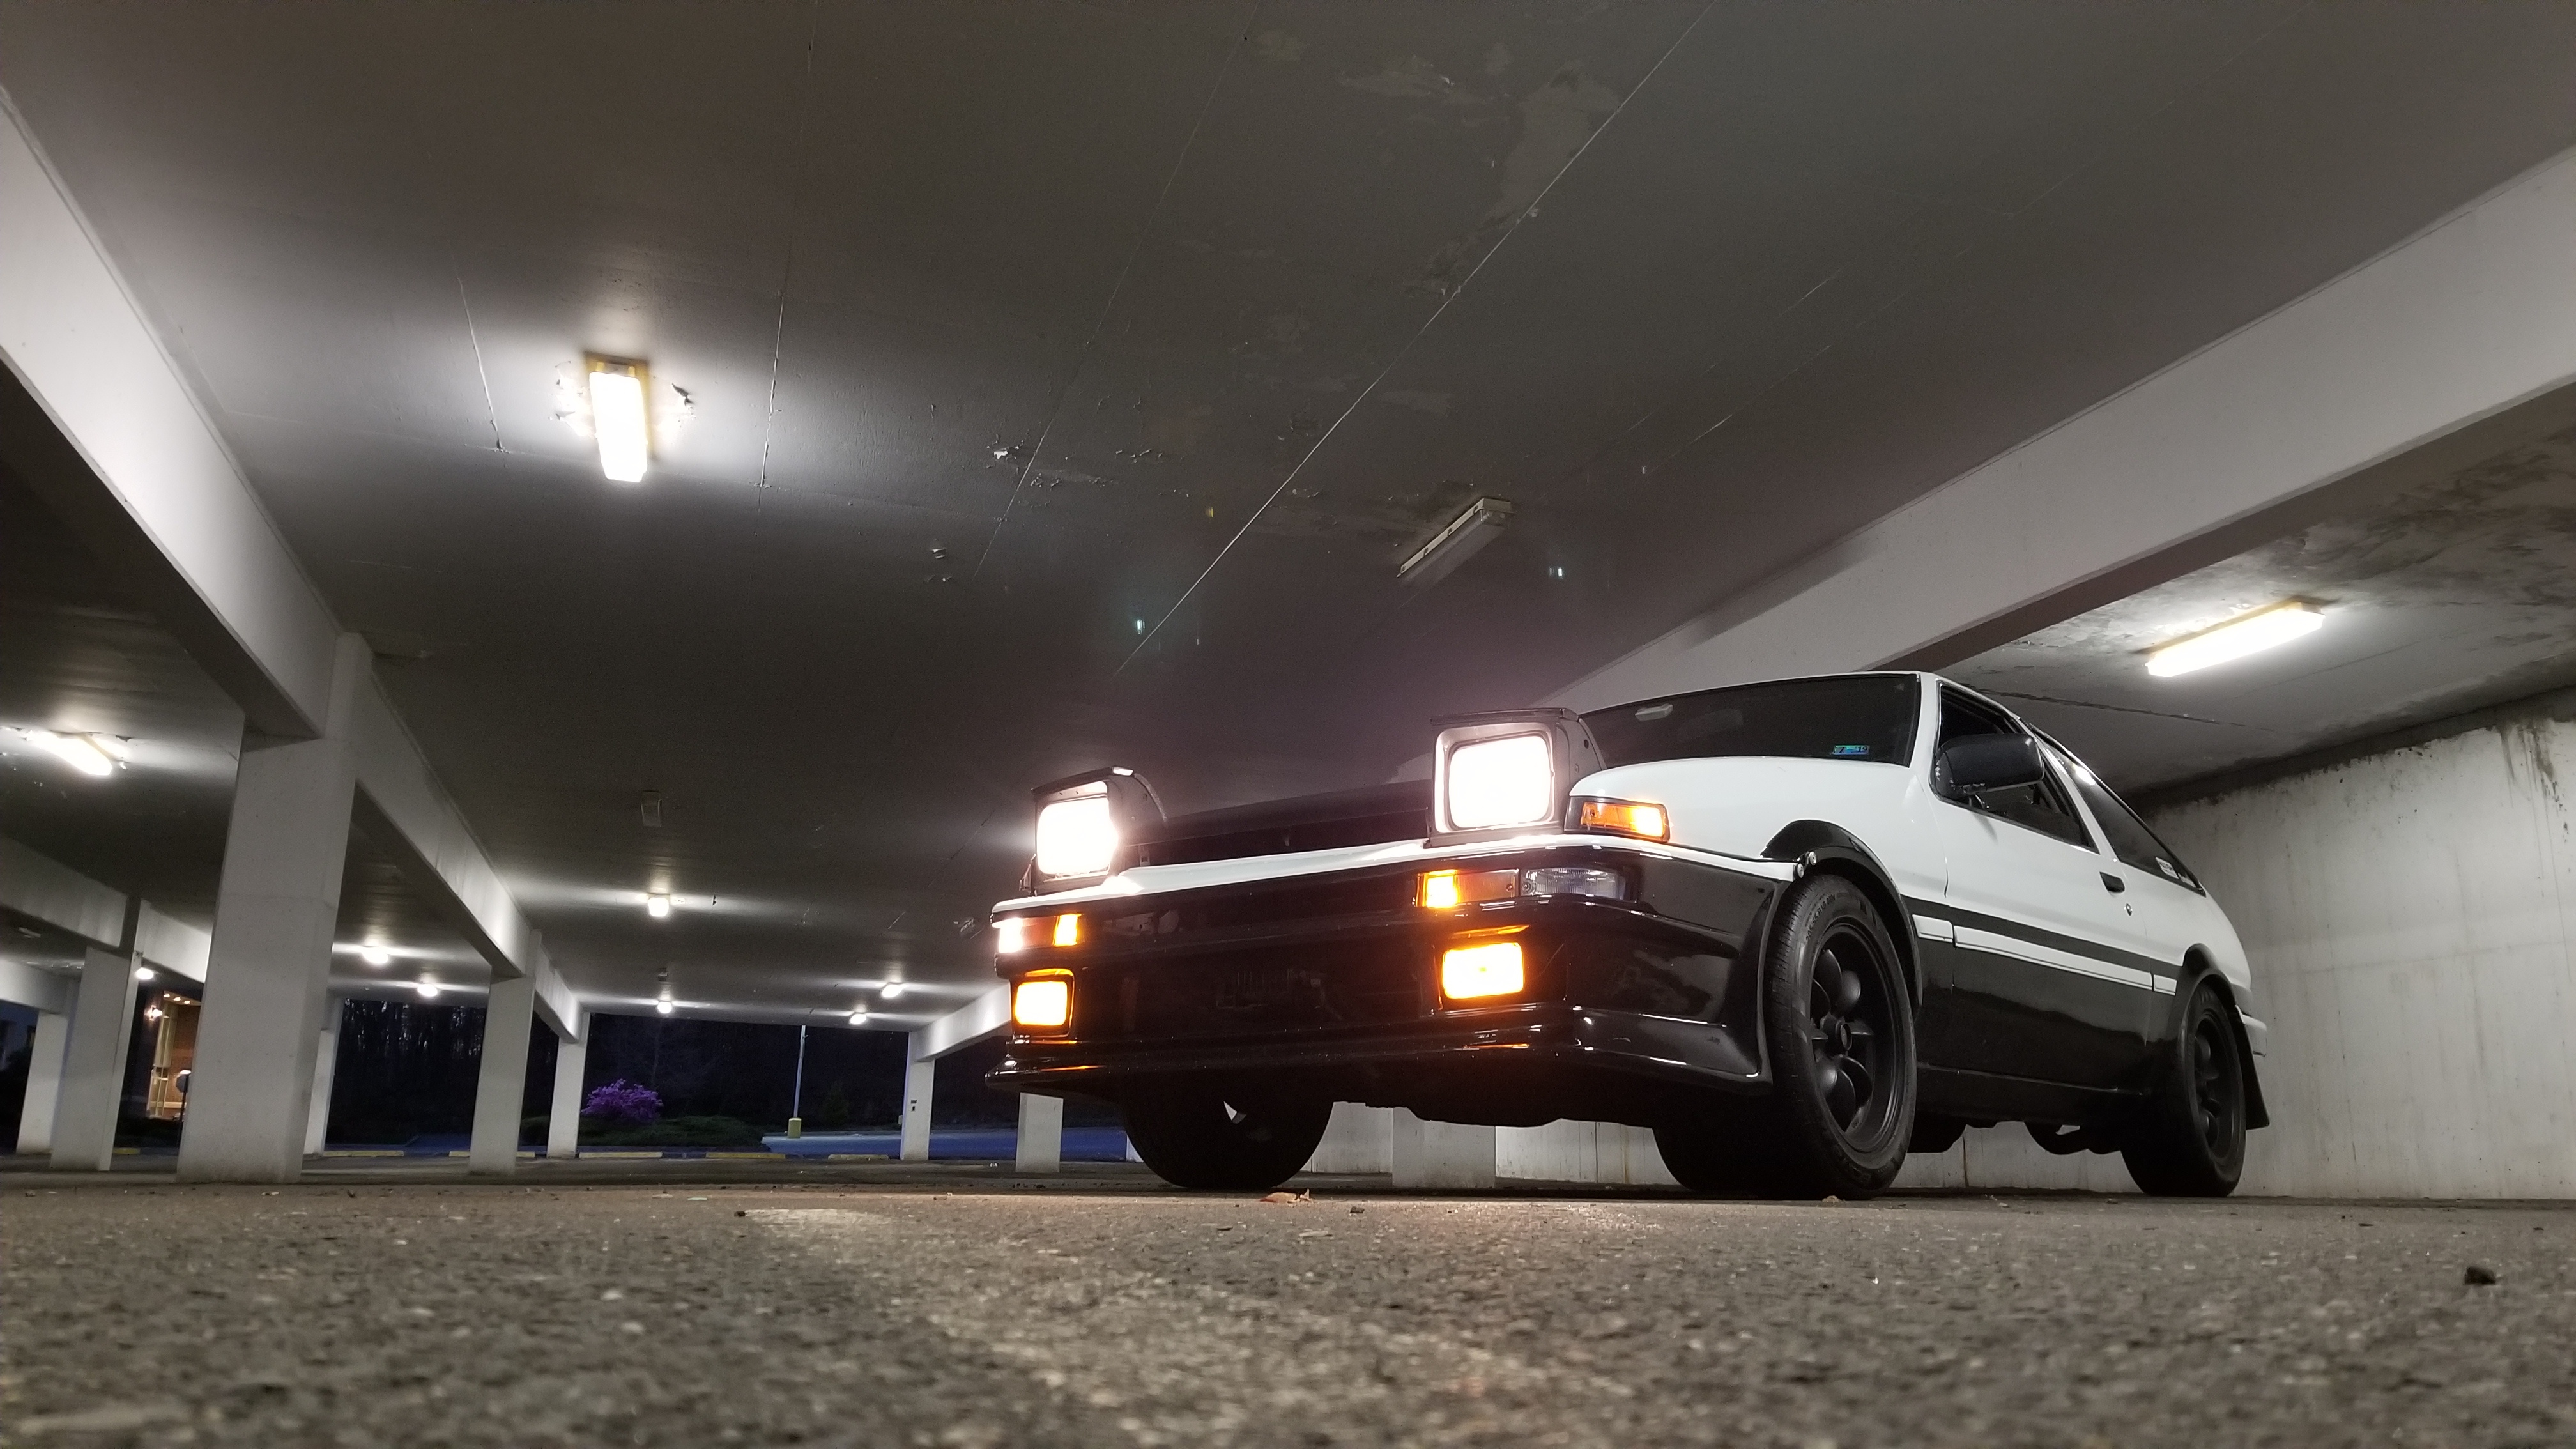 SaikouCon 2019 Featured Guest AE86 Sprinter Truen Fantasy Car_3